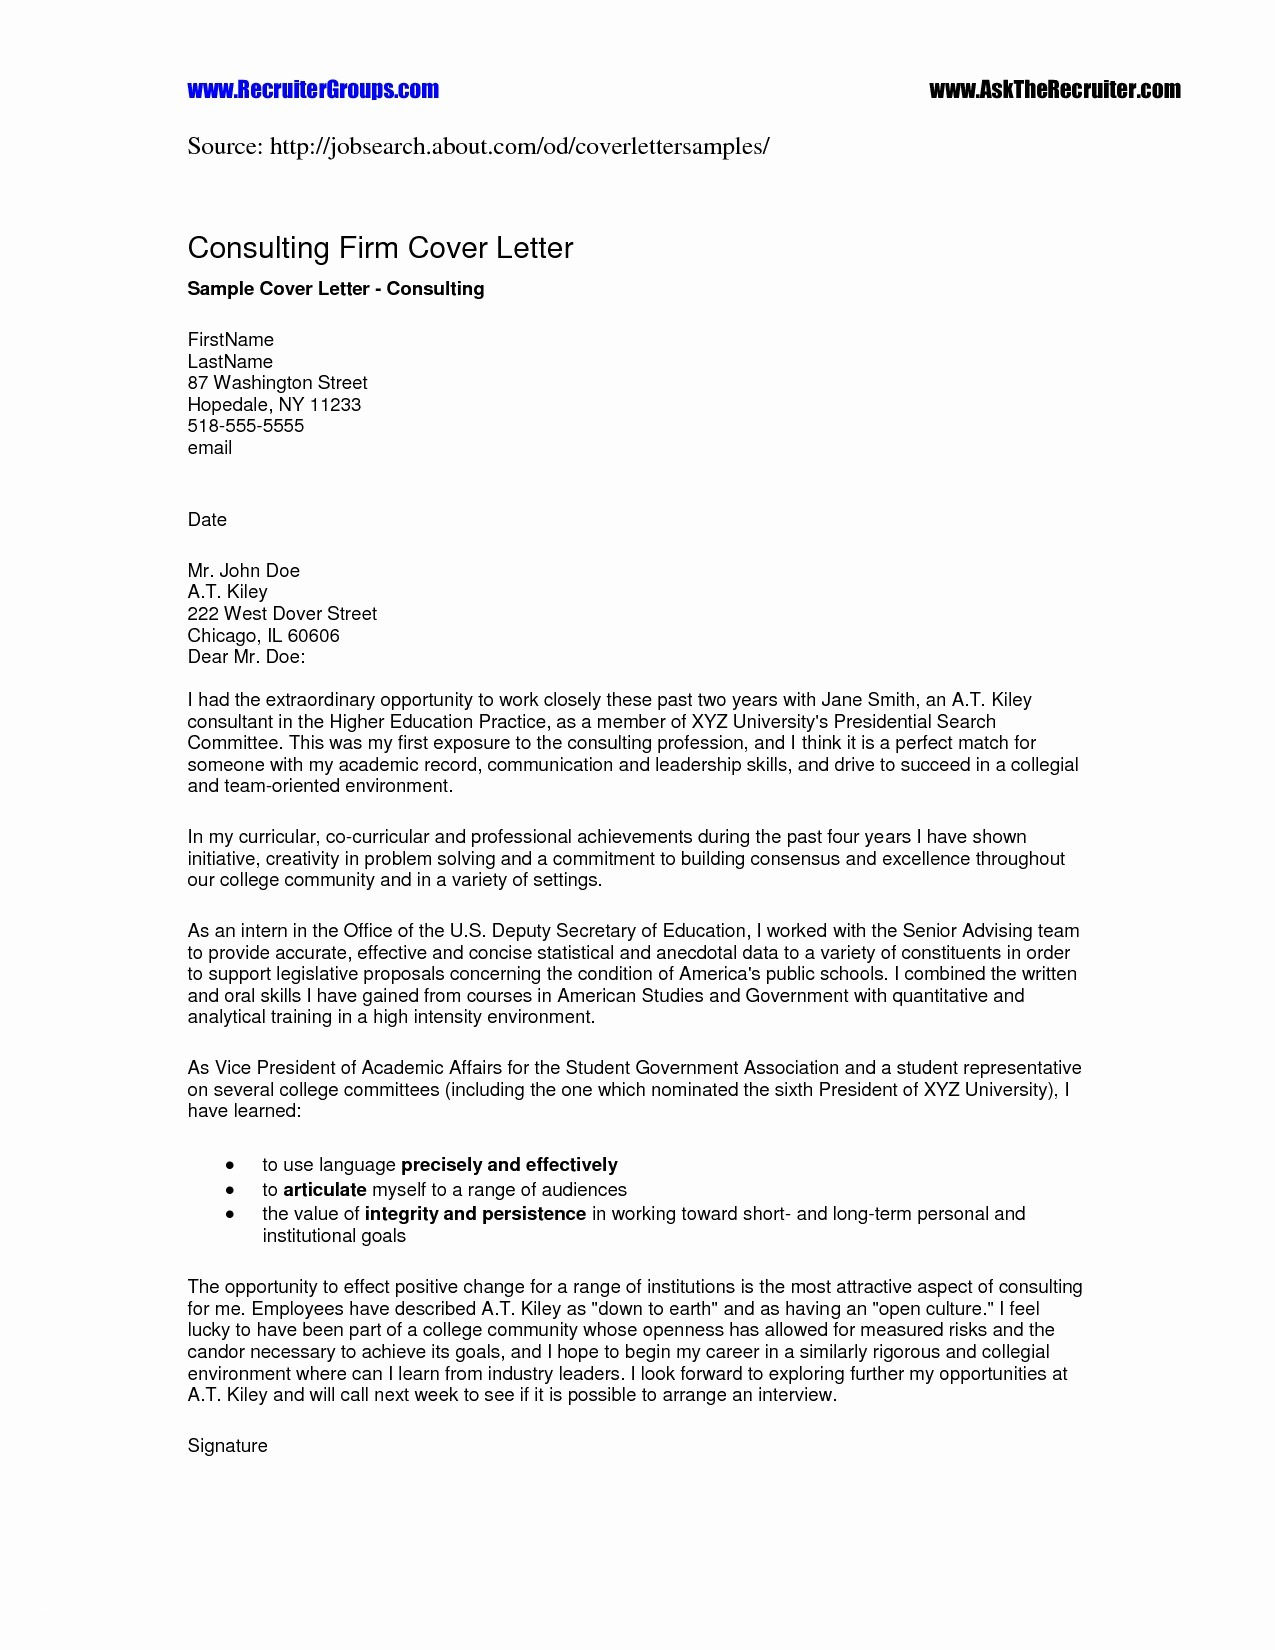 Cover Letter Template Word Job Application - Teachers Resume Cover Letter Awesome Teacher Cover Letter Template